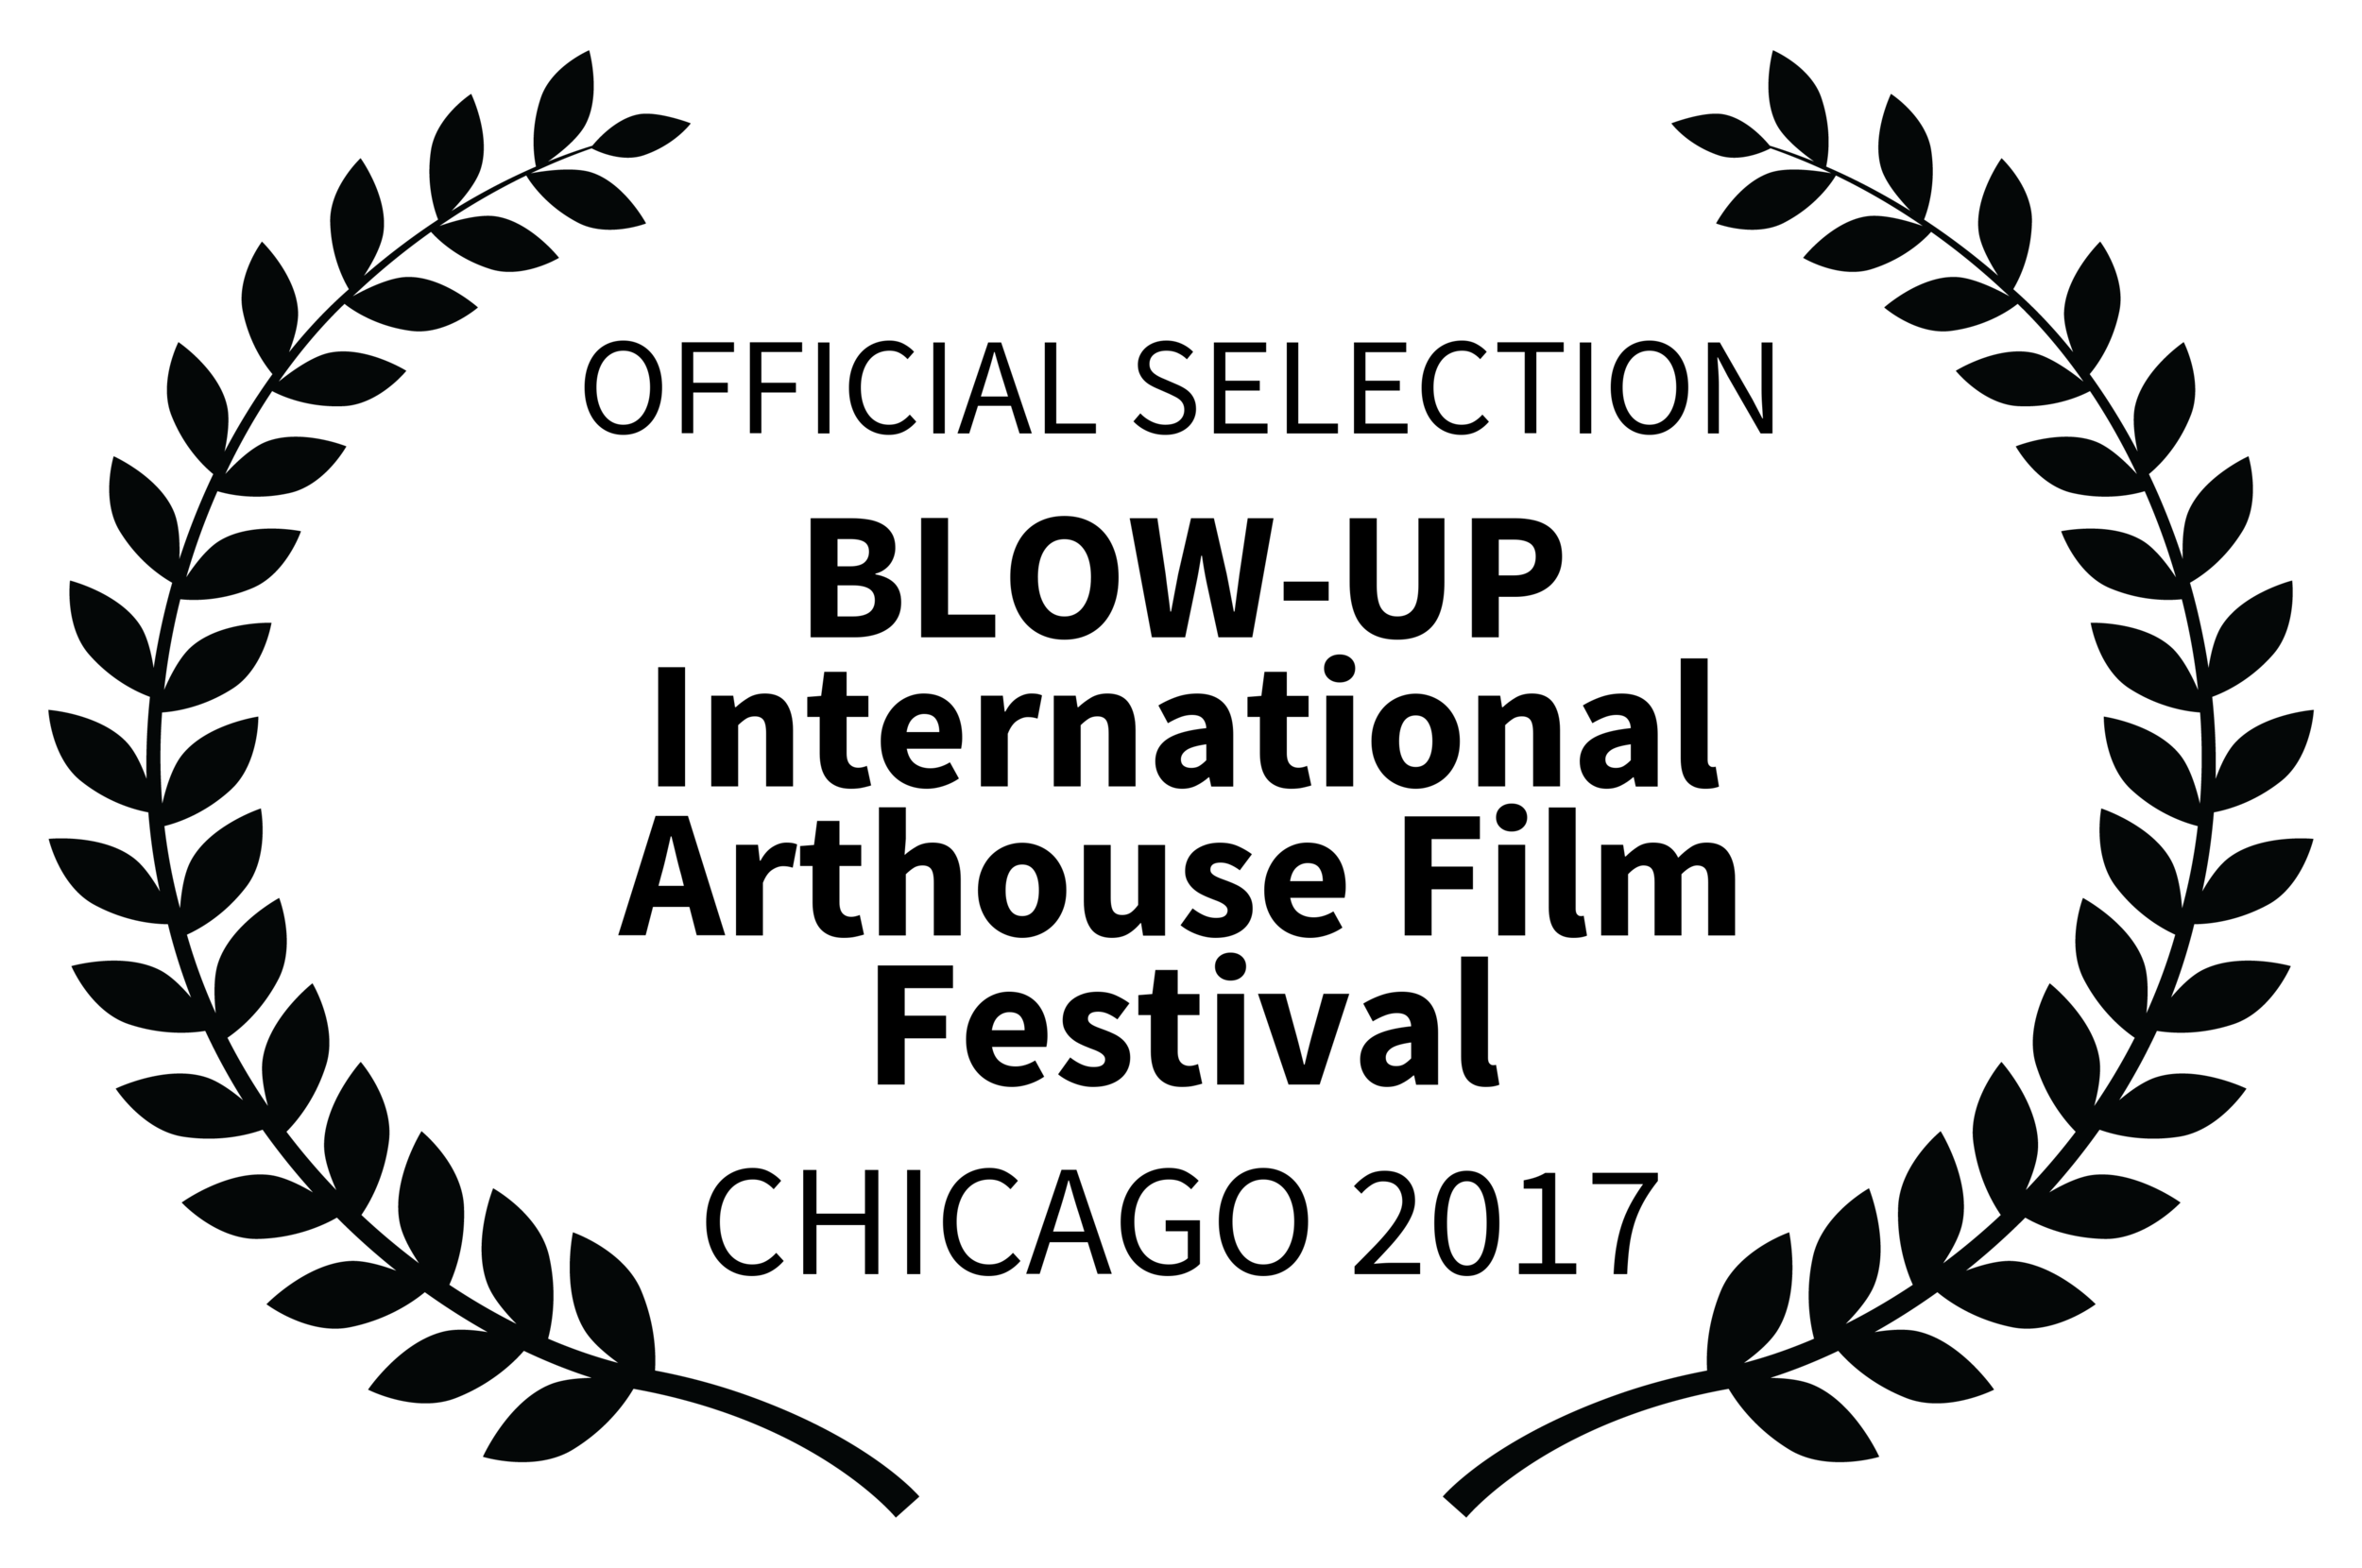 OFFICIALSELECTION-BLOW-UPInternationalArthouseFilmFestival-CHICAGO2017 (1).png